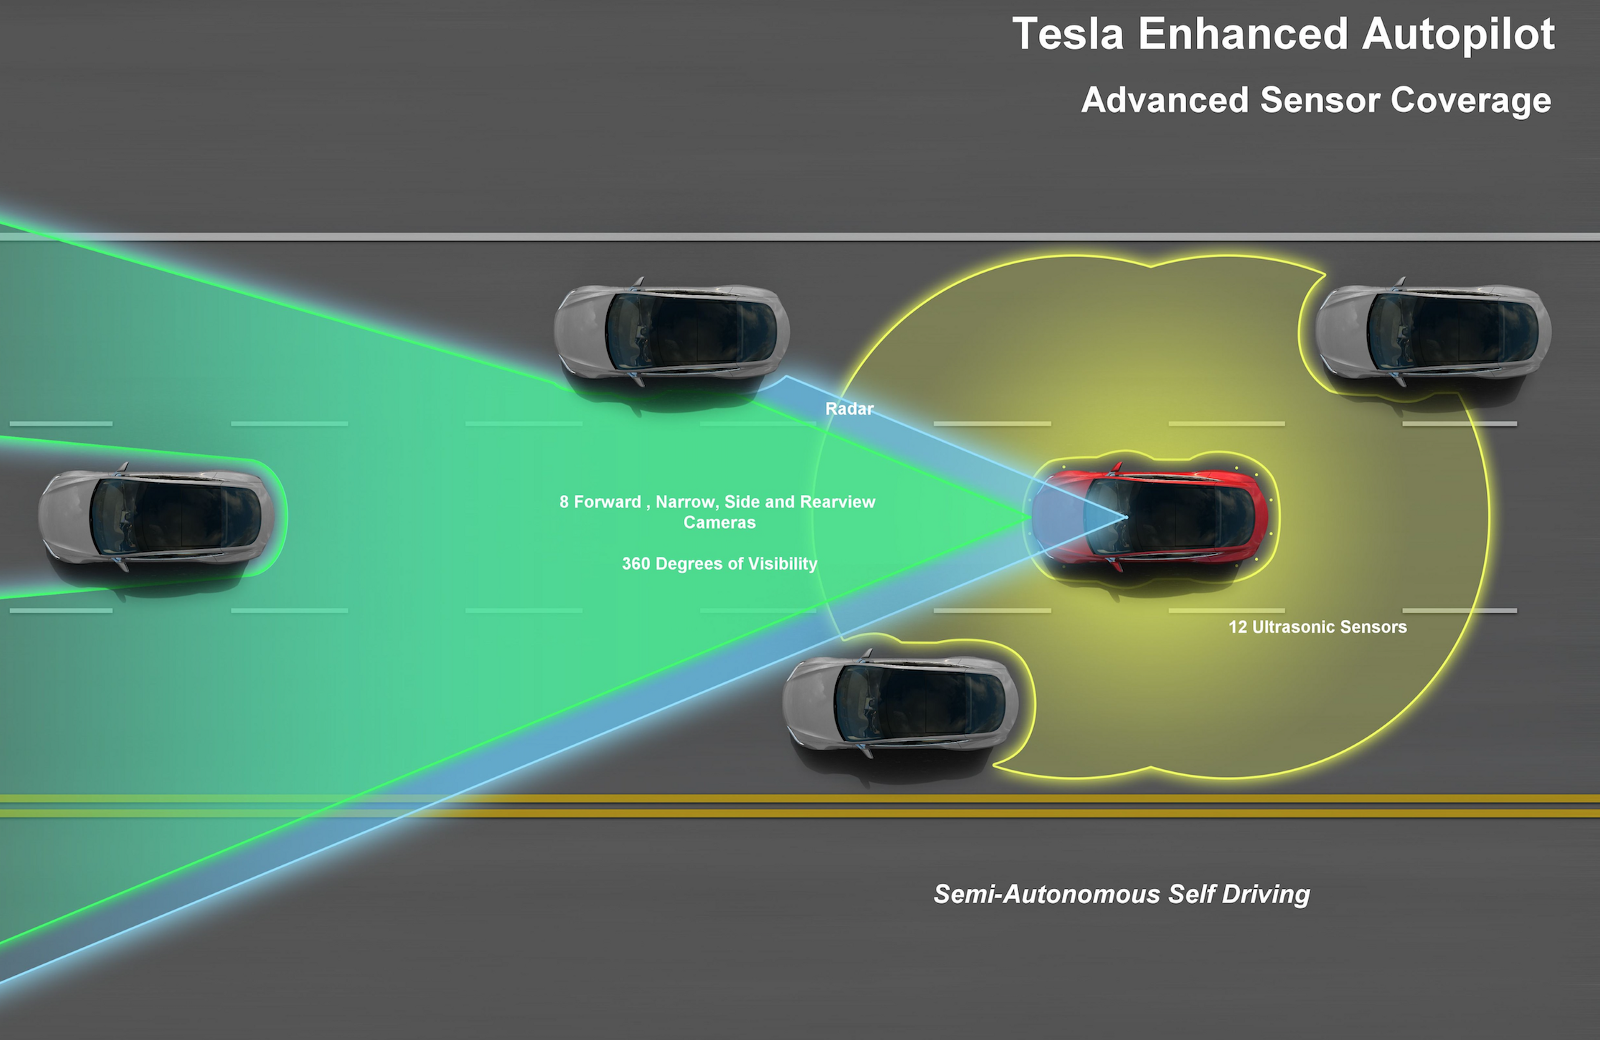 Tesla Update >> Tesla Enhanced Autopilot Overview — L2 Self Driving HW2